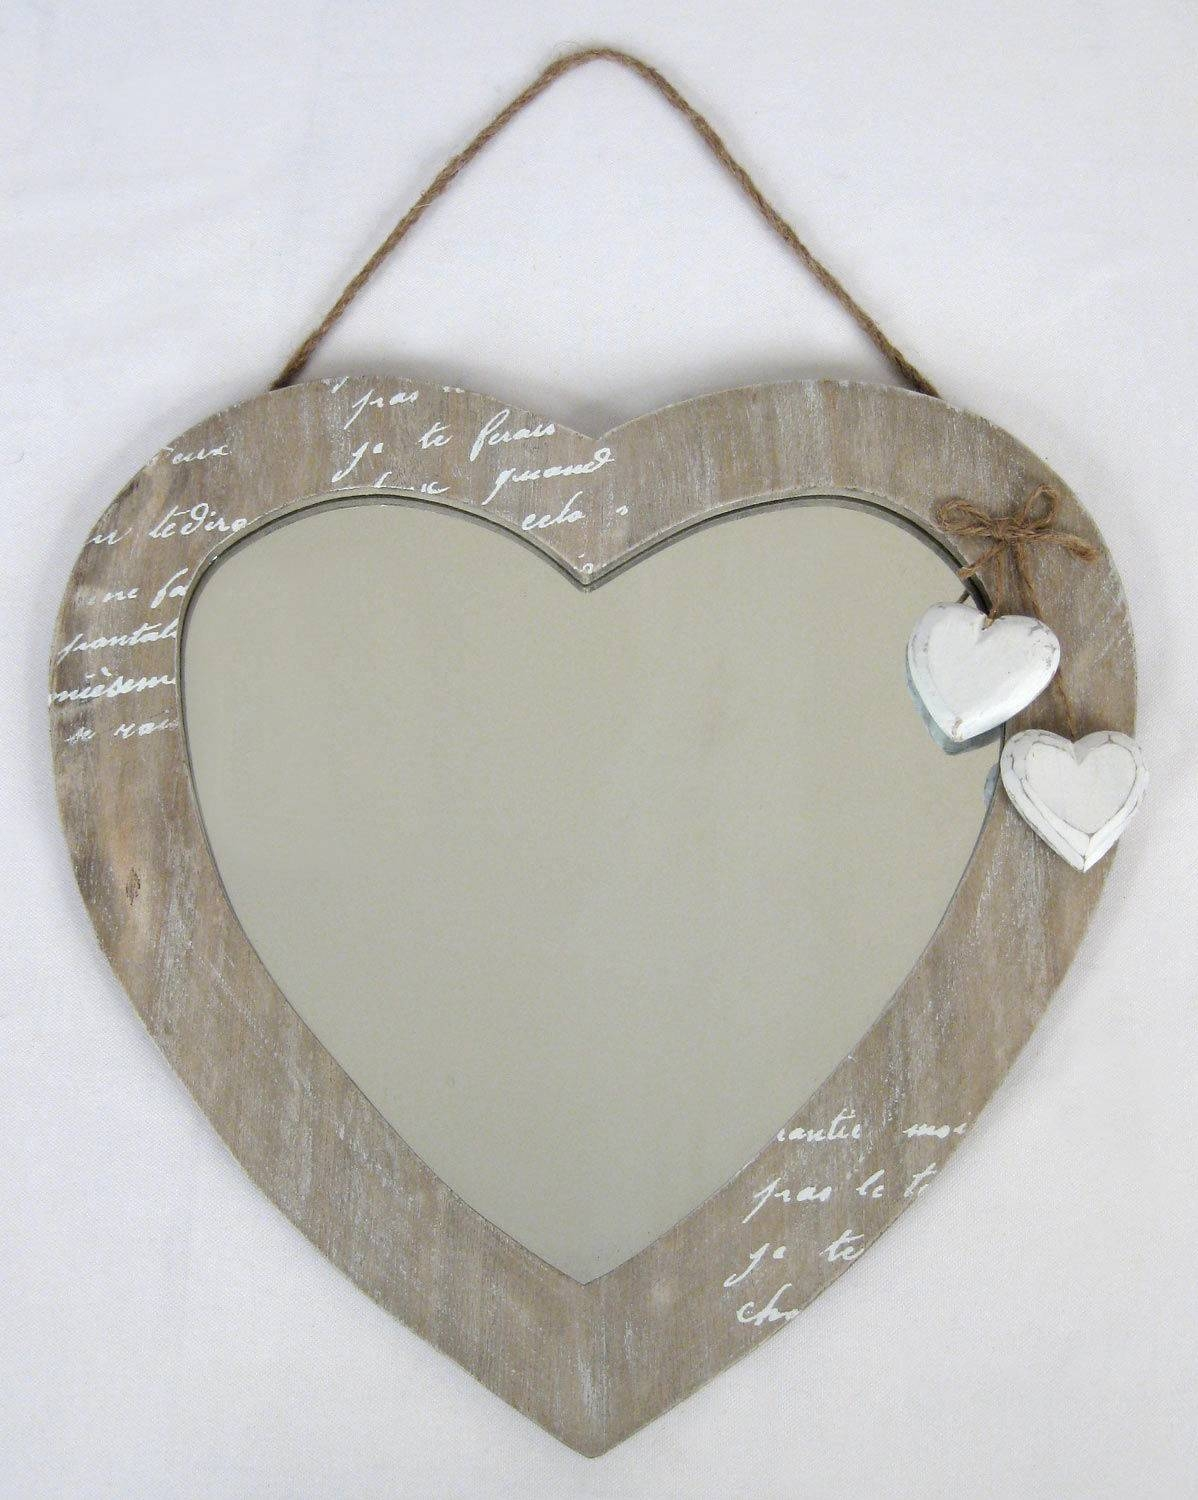 Wall Hanging Mirror Love Heart Design Shabby Chic Wood Finish 30Cm intended for Heart Shaped Mirrors for Wall (Image 25 of 25)